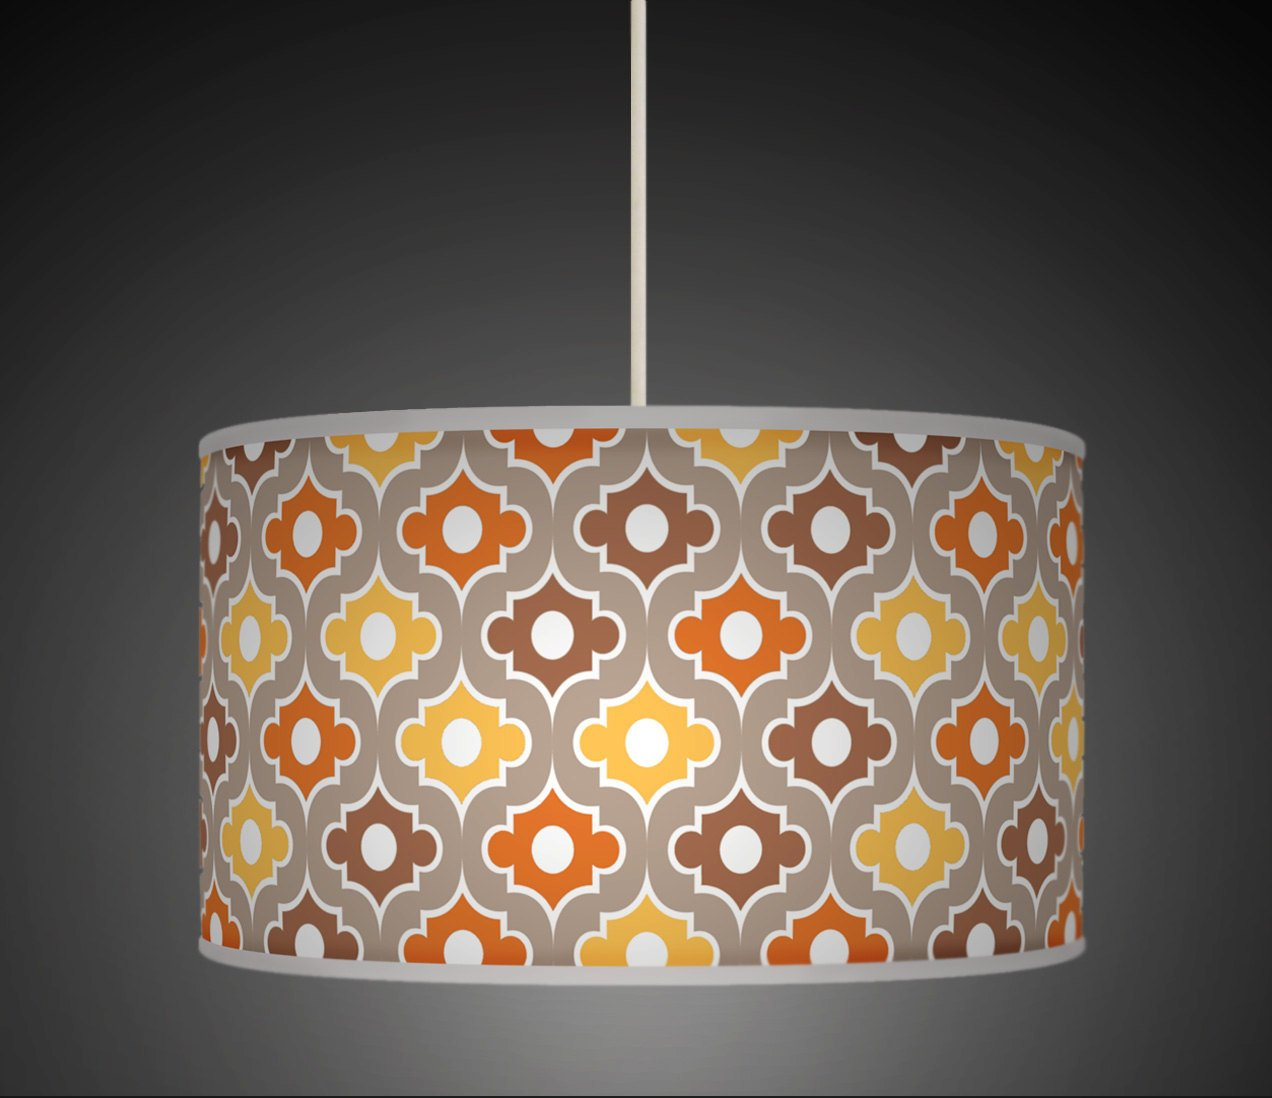 20cm 8 moroccan mustard orange retro handmade geometric giclee 20cm 8 moroccan mustard orange retro handmade geometric giclee style printed fabric lamp drum lampshade floor or ceiling pendant light shade 600 aloadofball Gallery